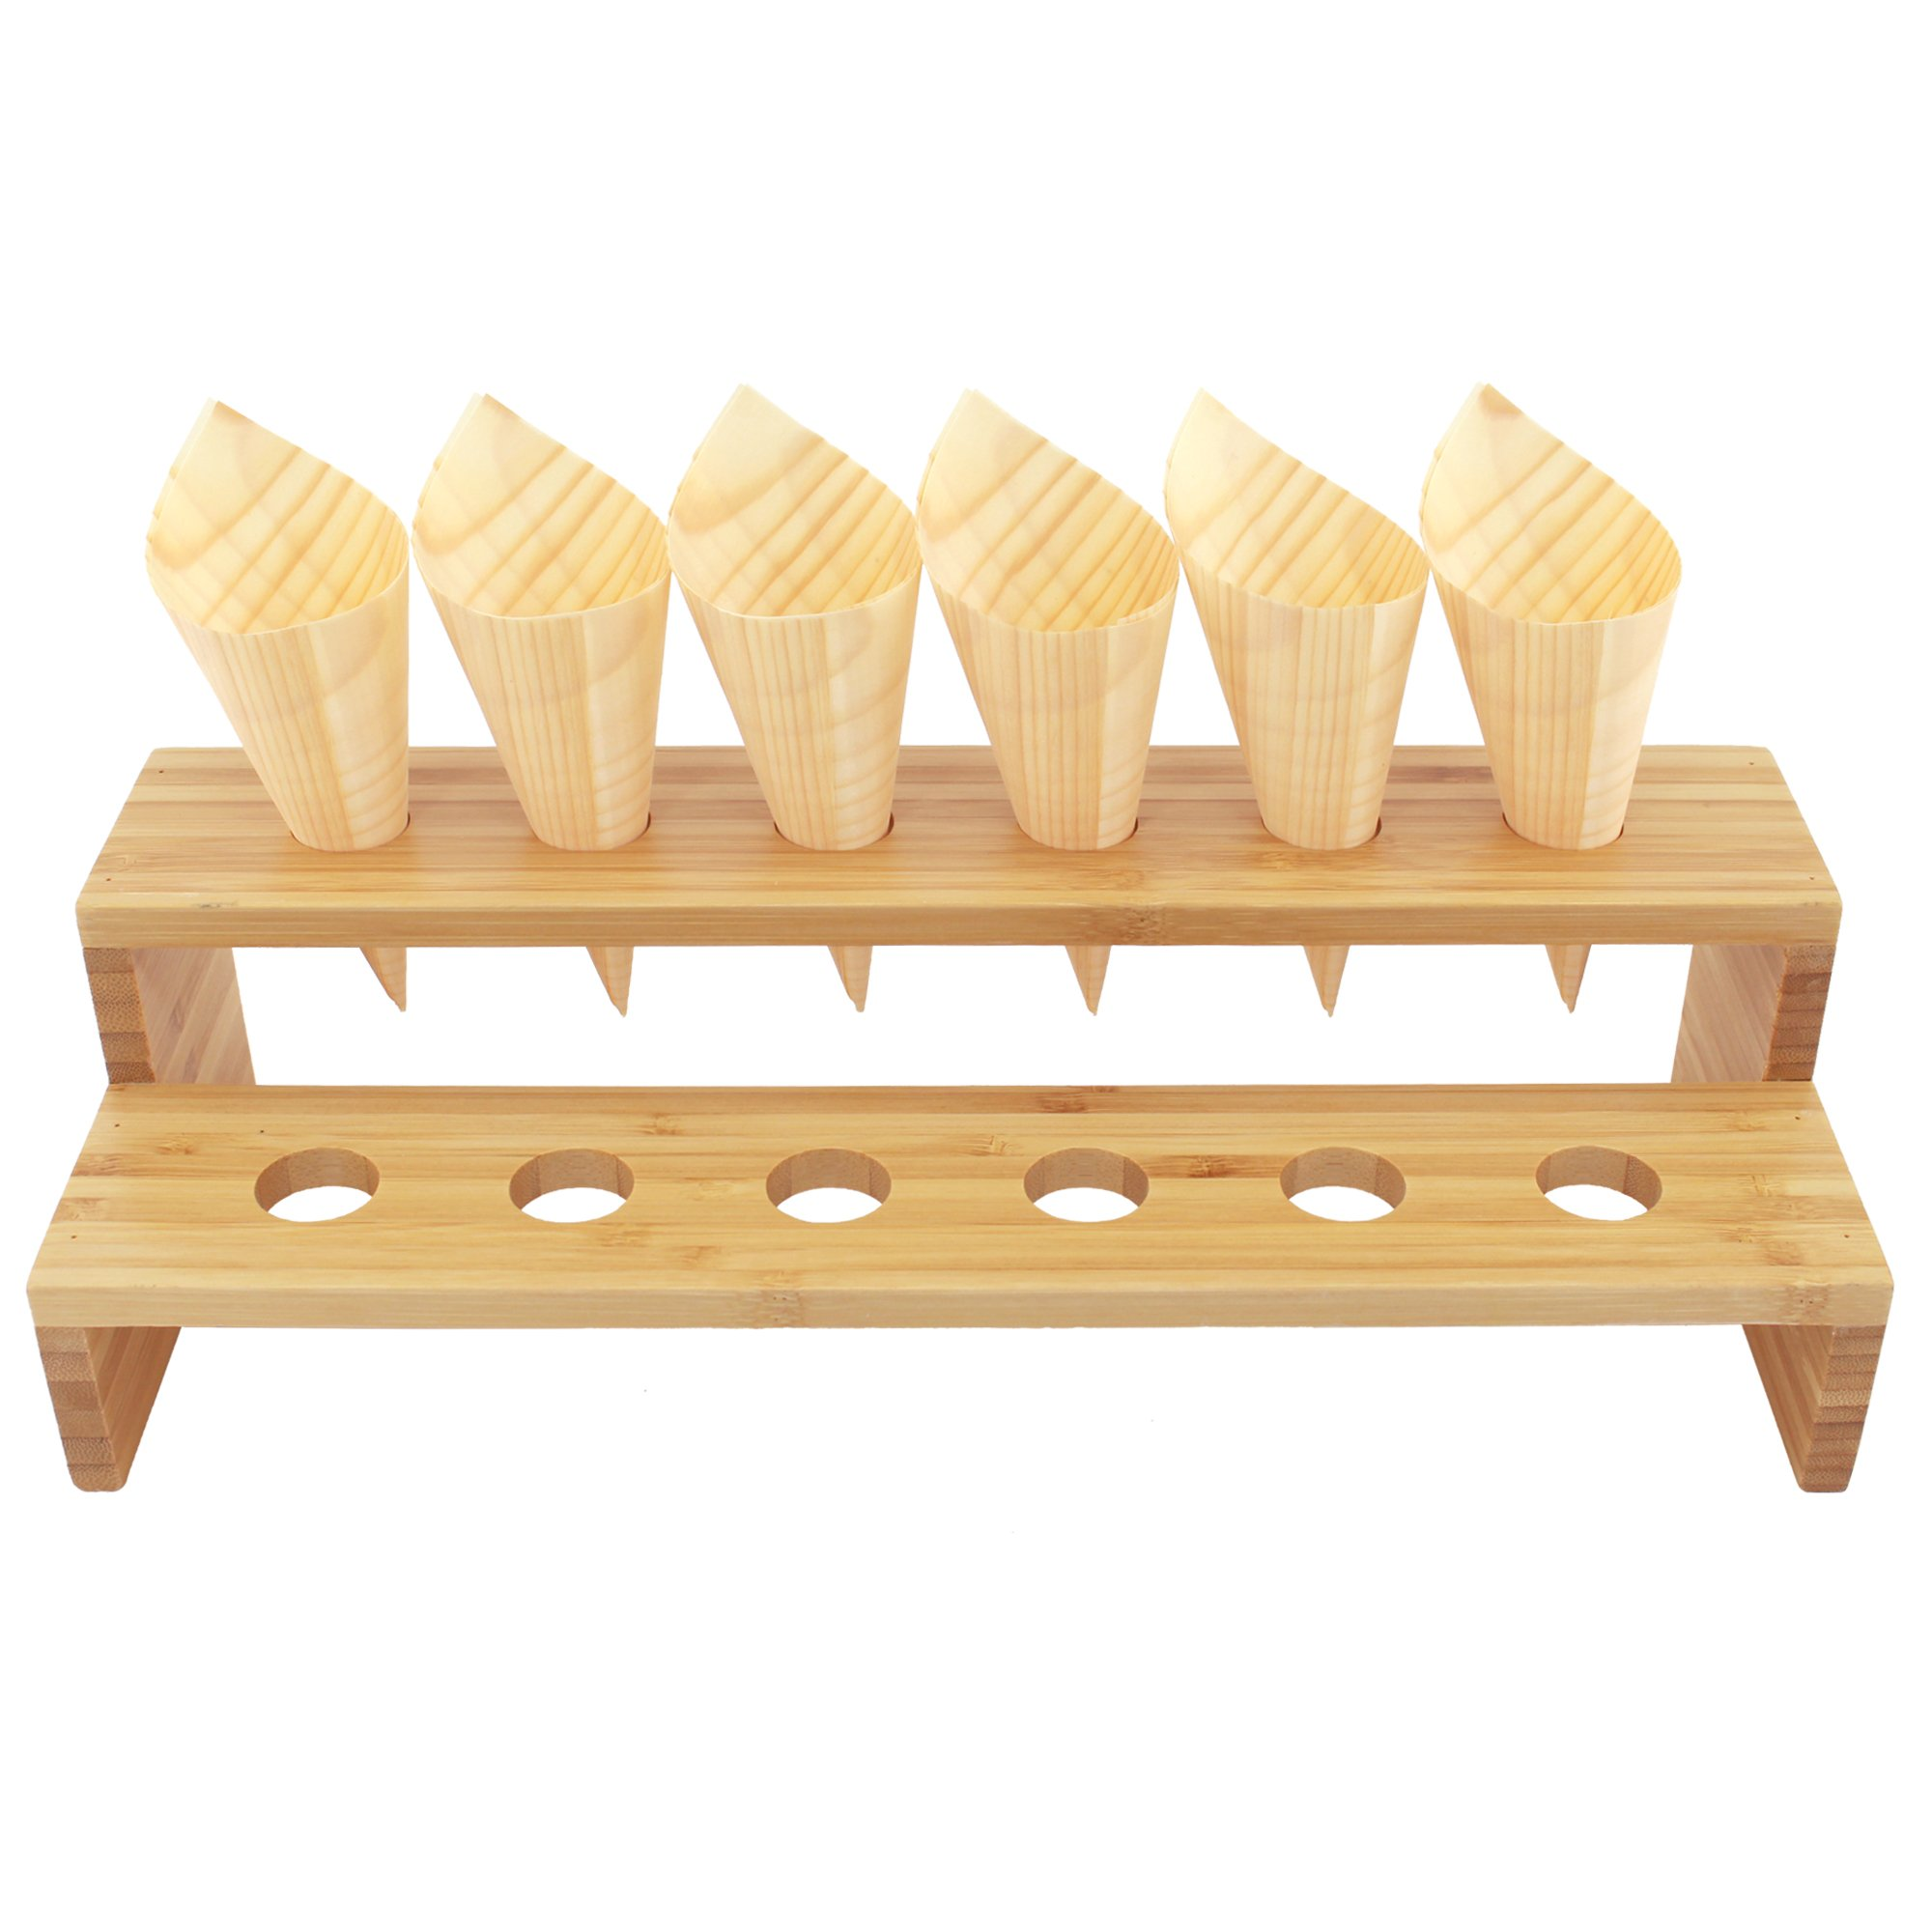 BambooMN 13'' x 4.9'' x 3.5'' Natural Bamboo Straight Multi Level Food Cone Display Tamaki Stand for Restaurants, Catered Events, Party or Buffets, Holds up to 12 Cones - 3 Pieces